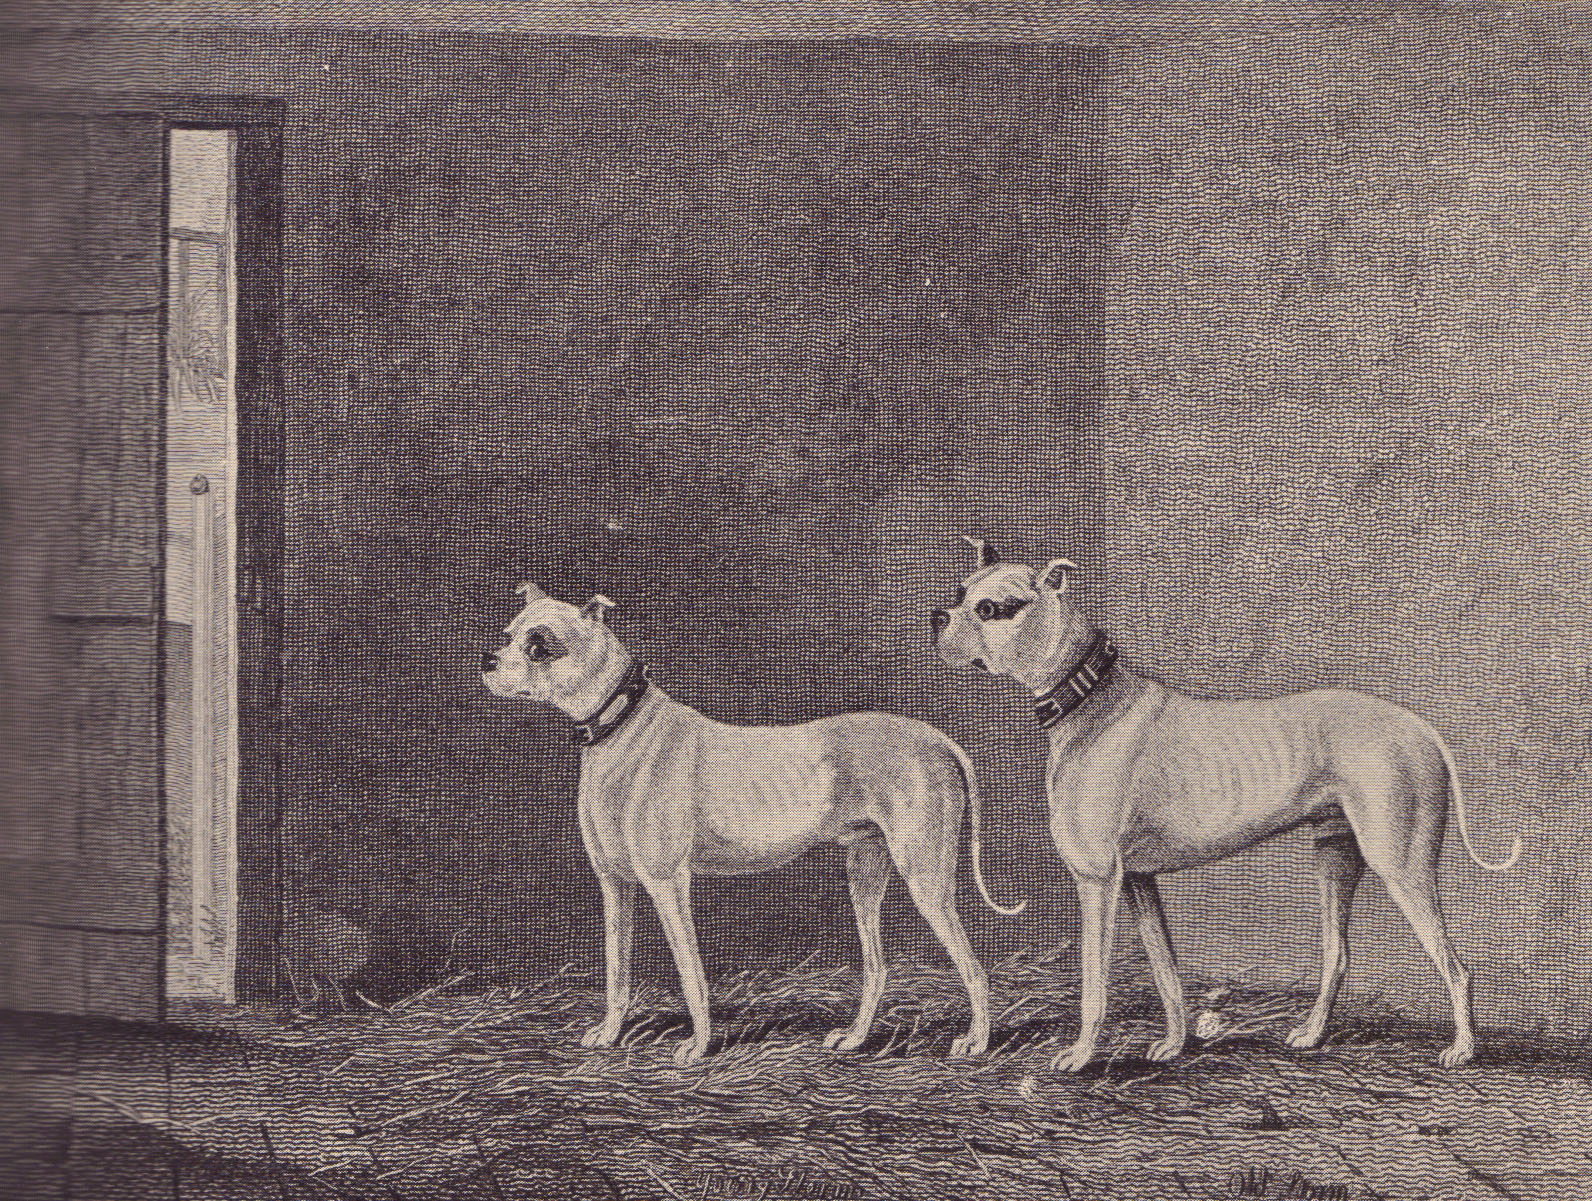 History of pit bulls in england